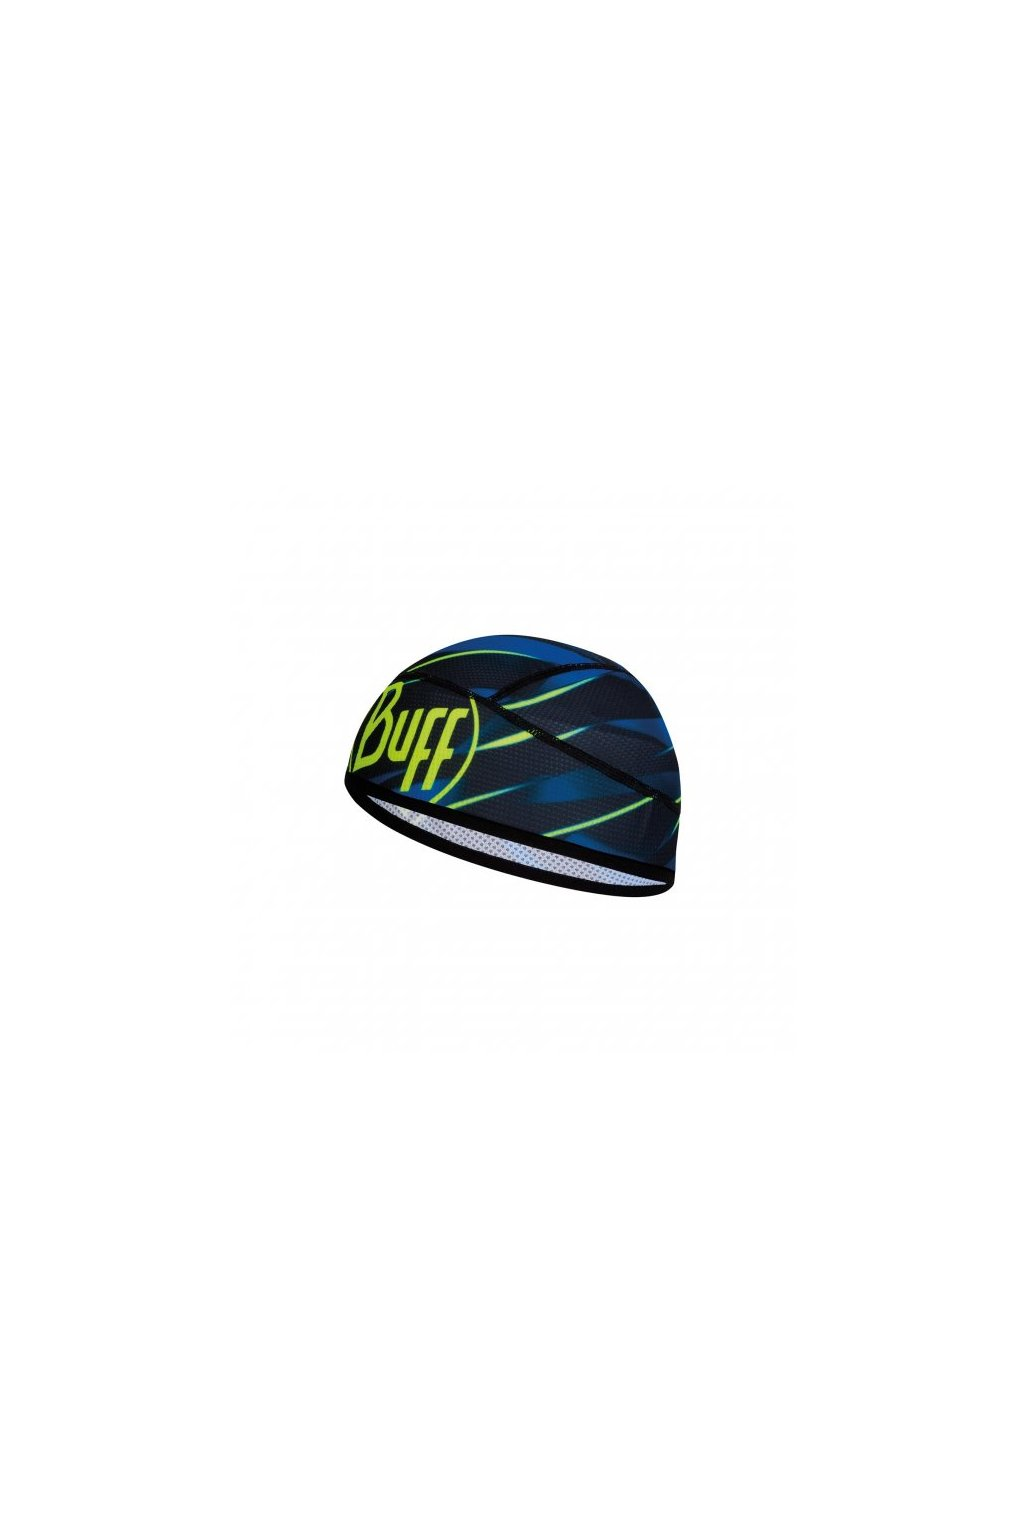 underhelmet hat focus blue l xl 1200737073000